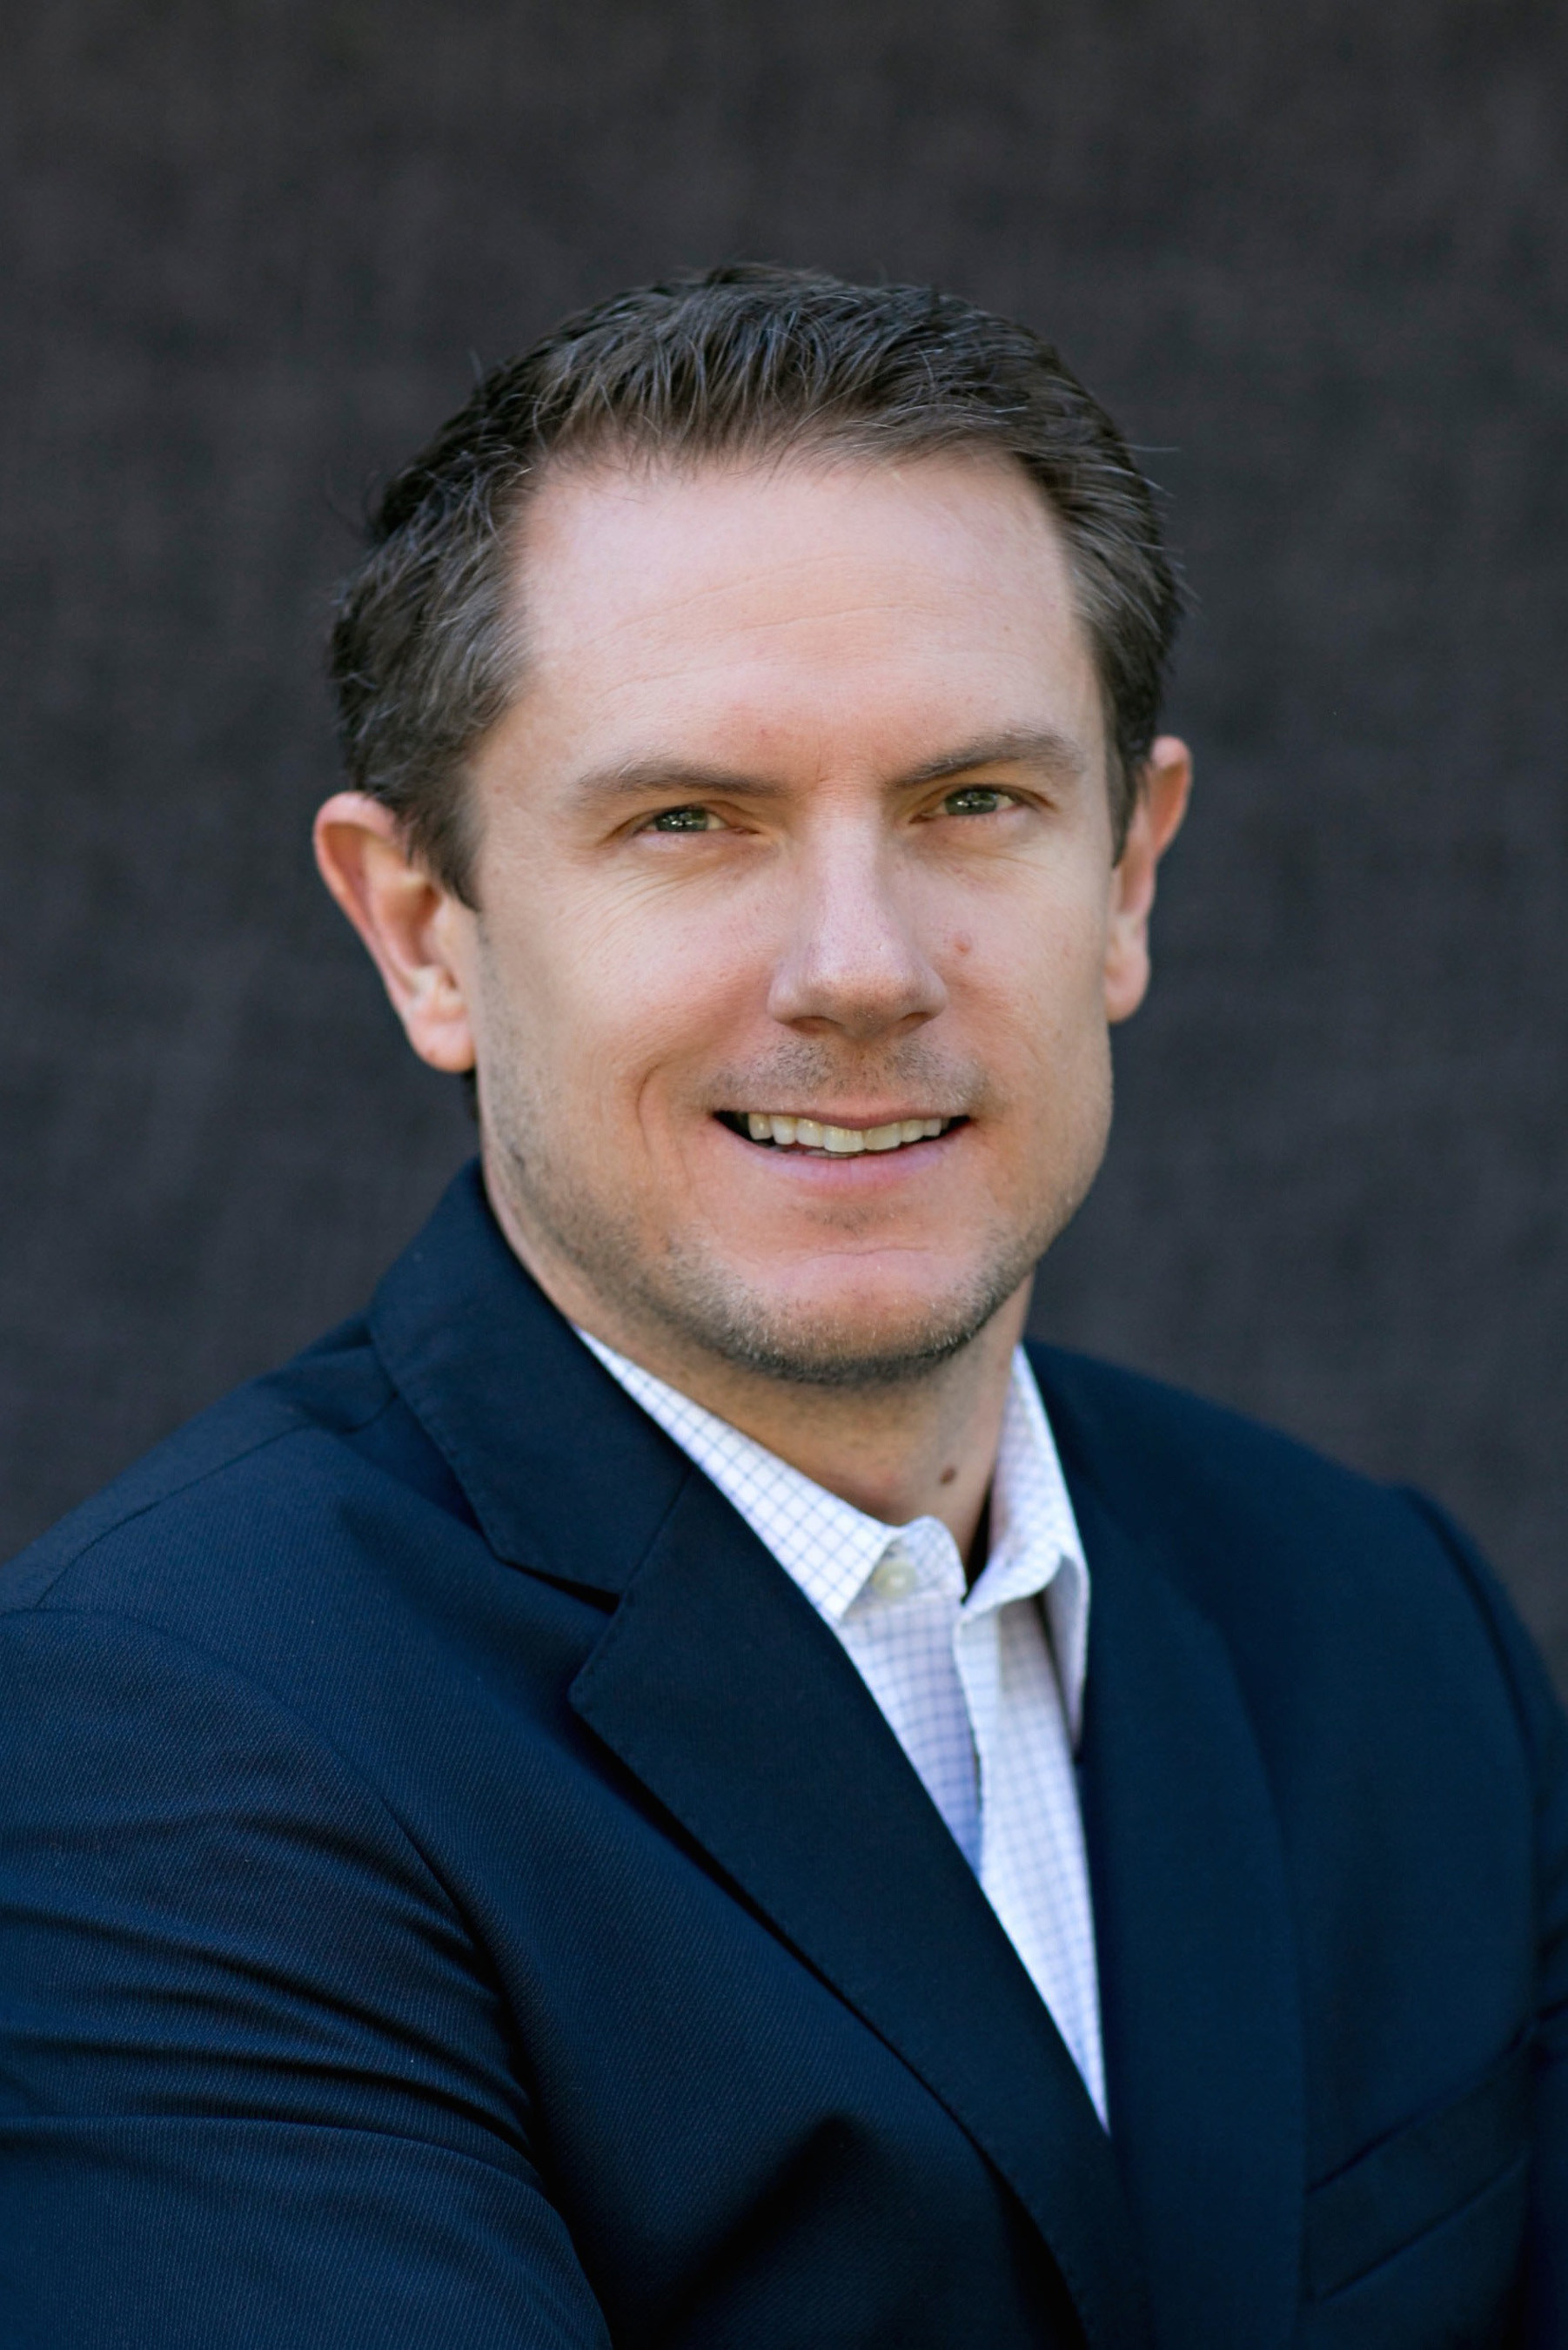 Kevin Ness - CEO, Muse bio